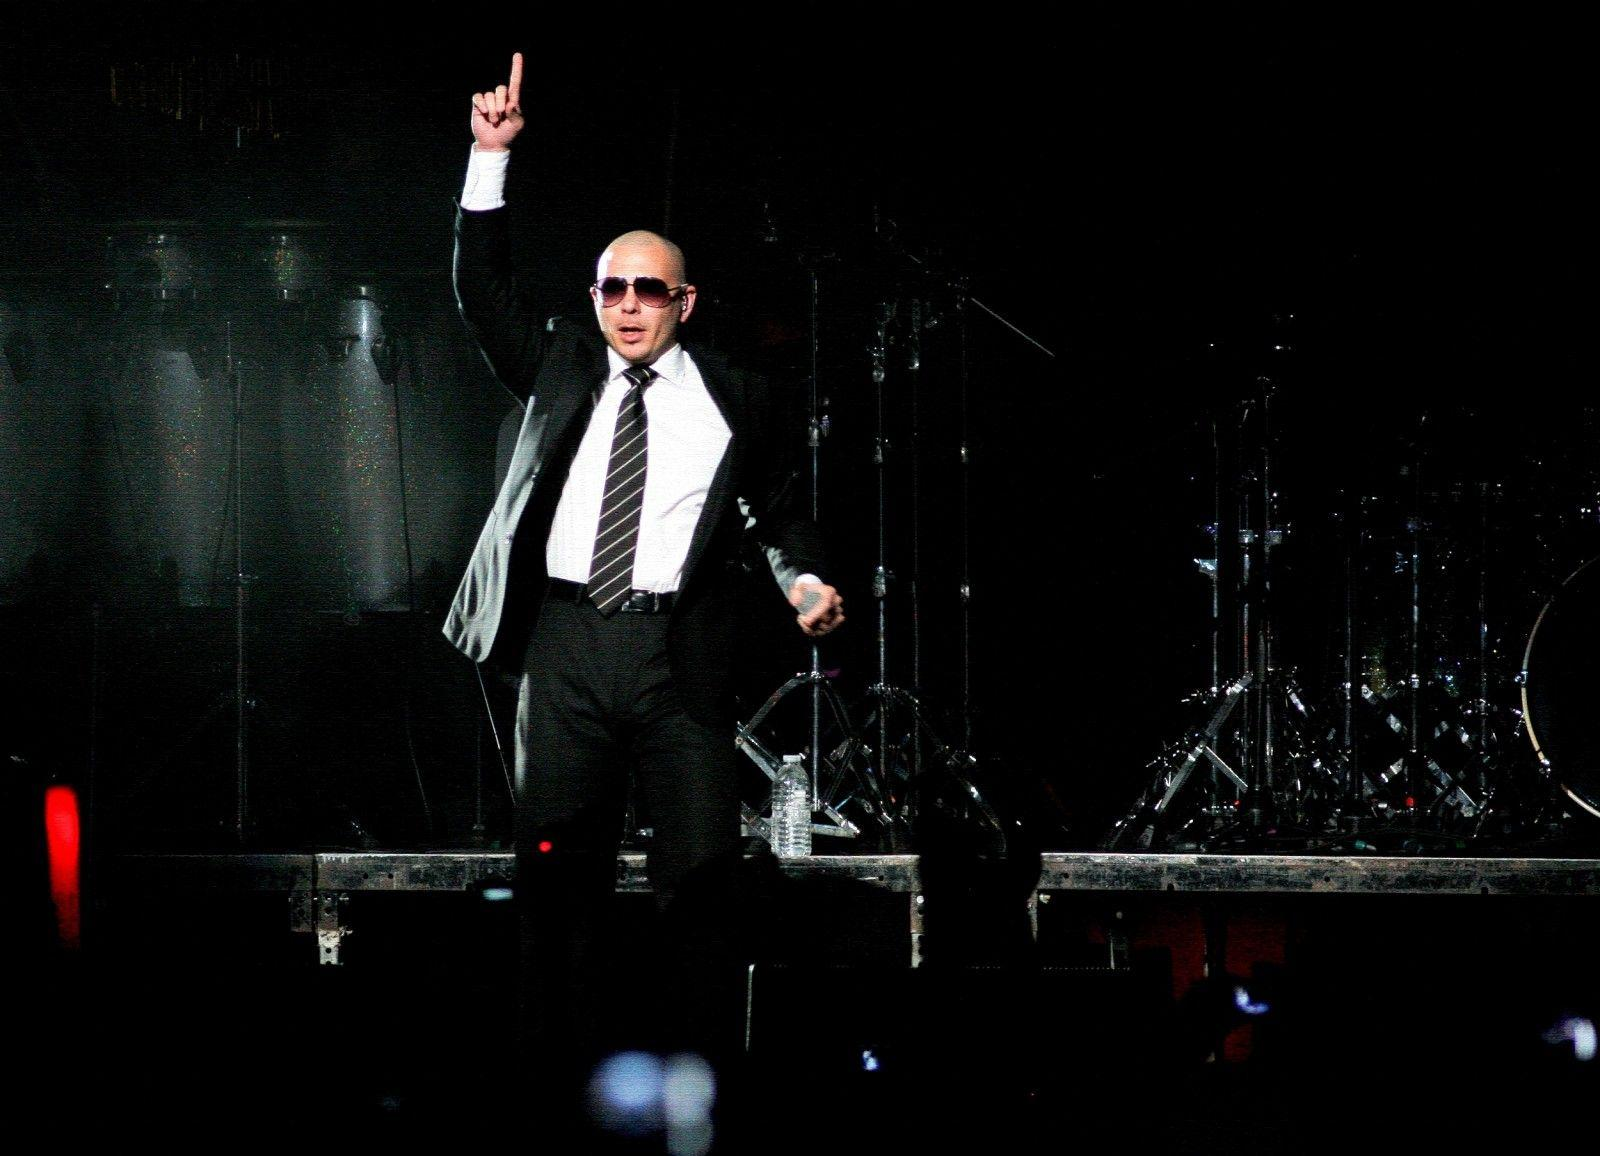 Pitbull Rapper Wallpapers - Wallpaper Cave